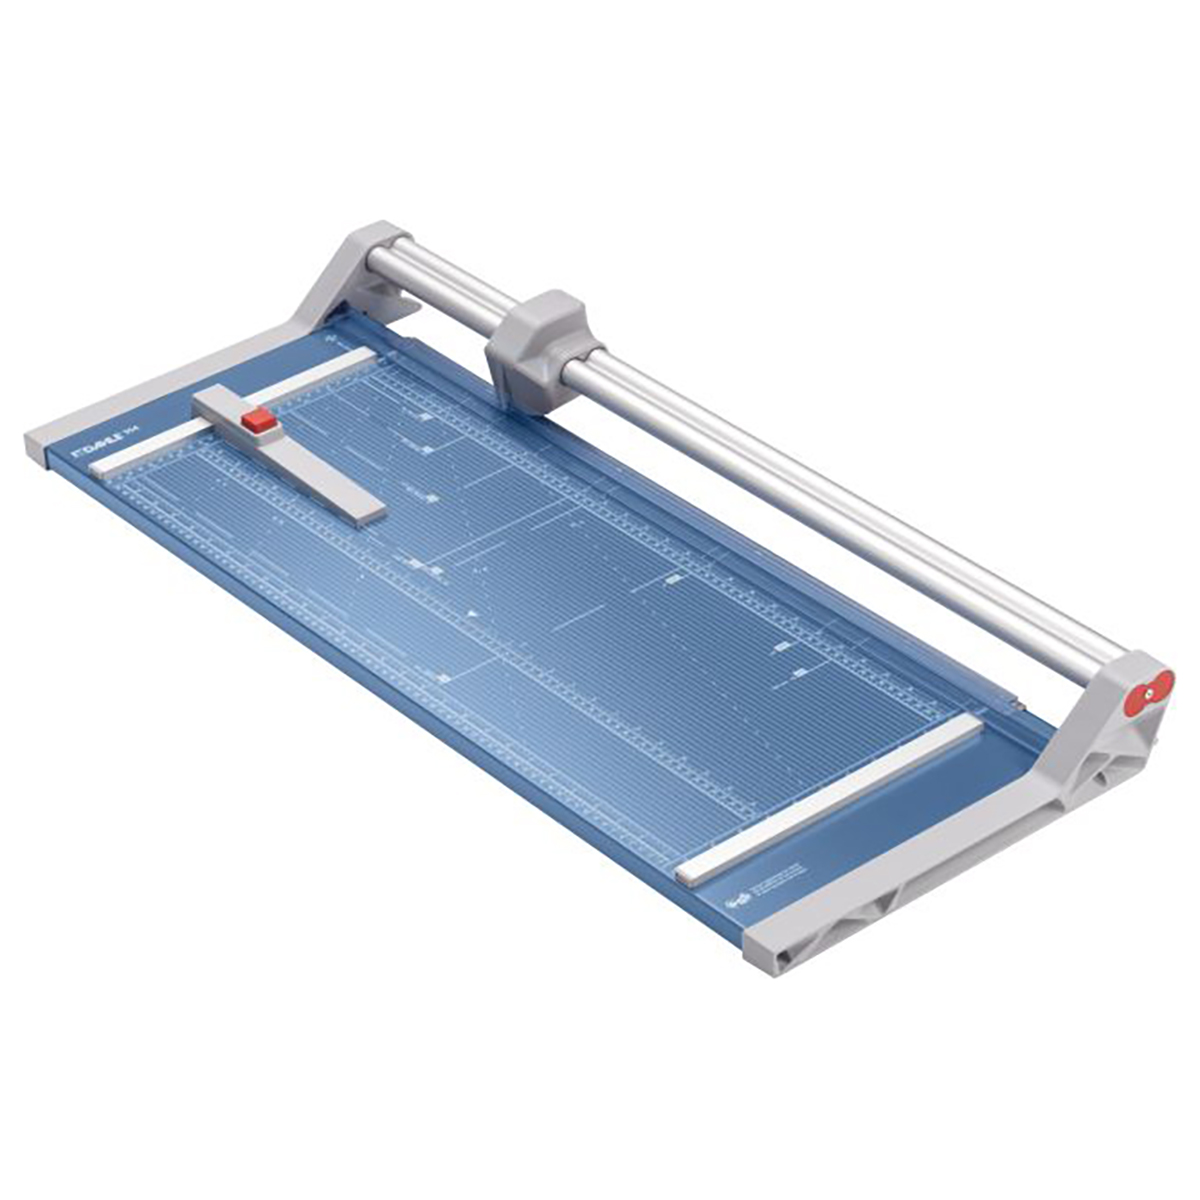 Dahle 554 A2 Professional Trimmer